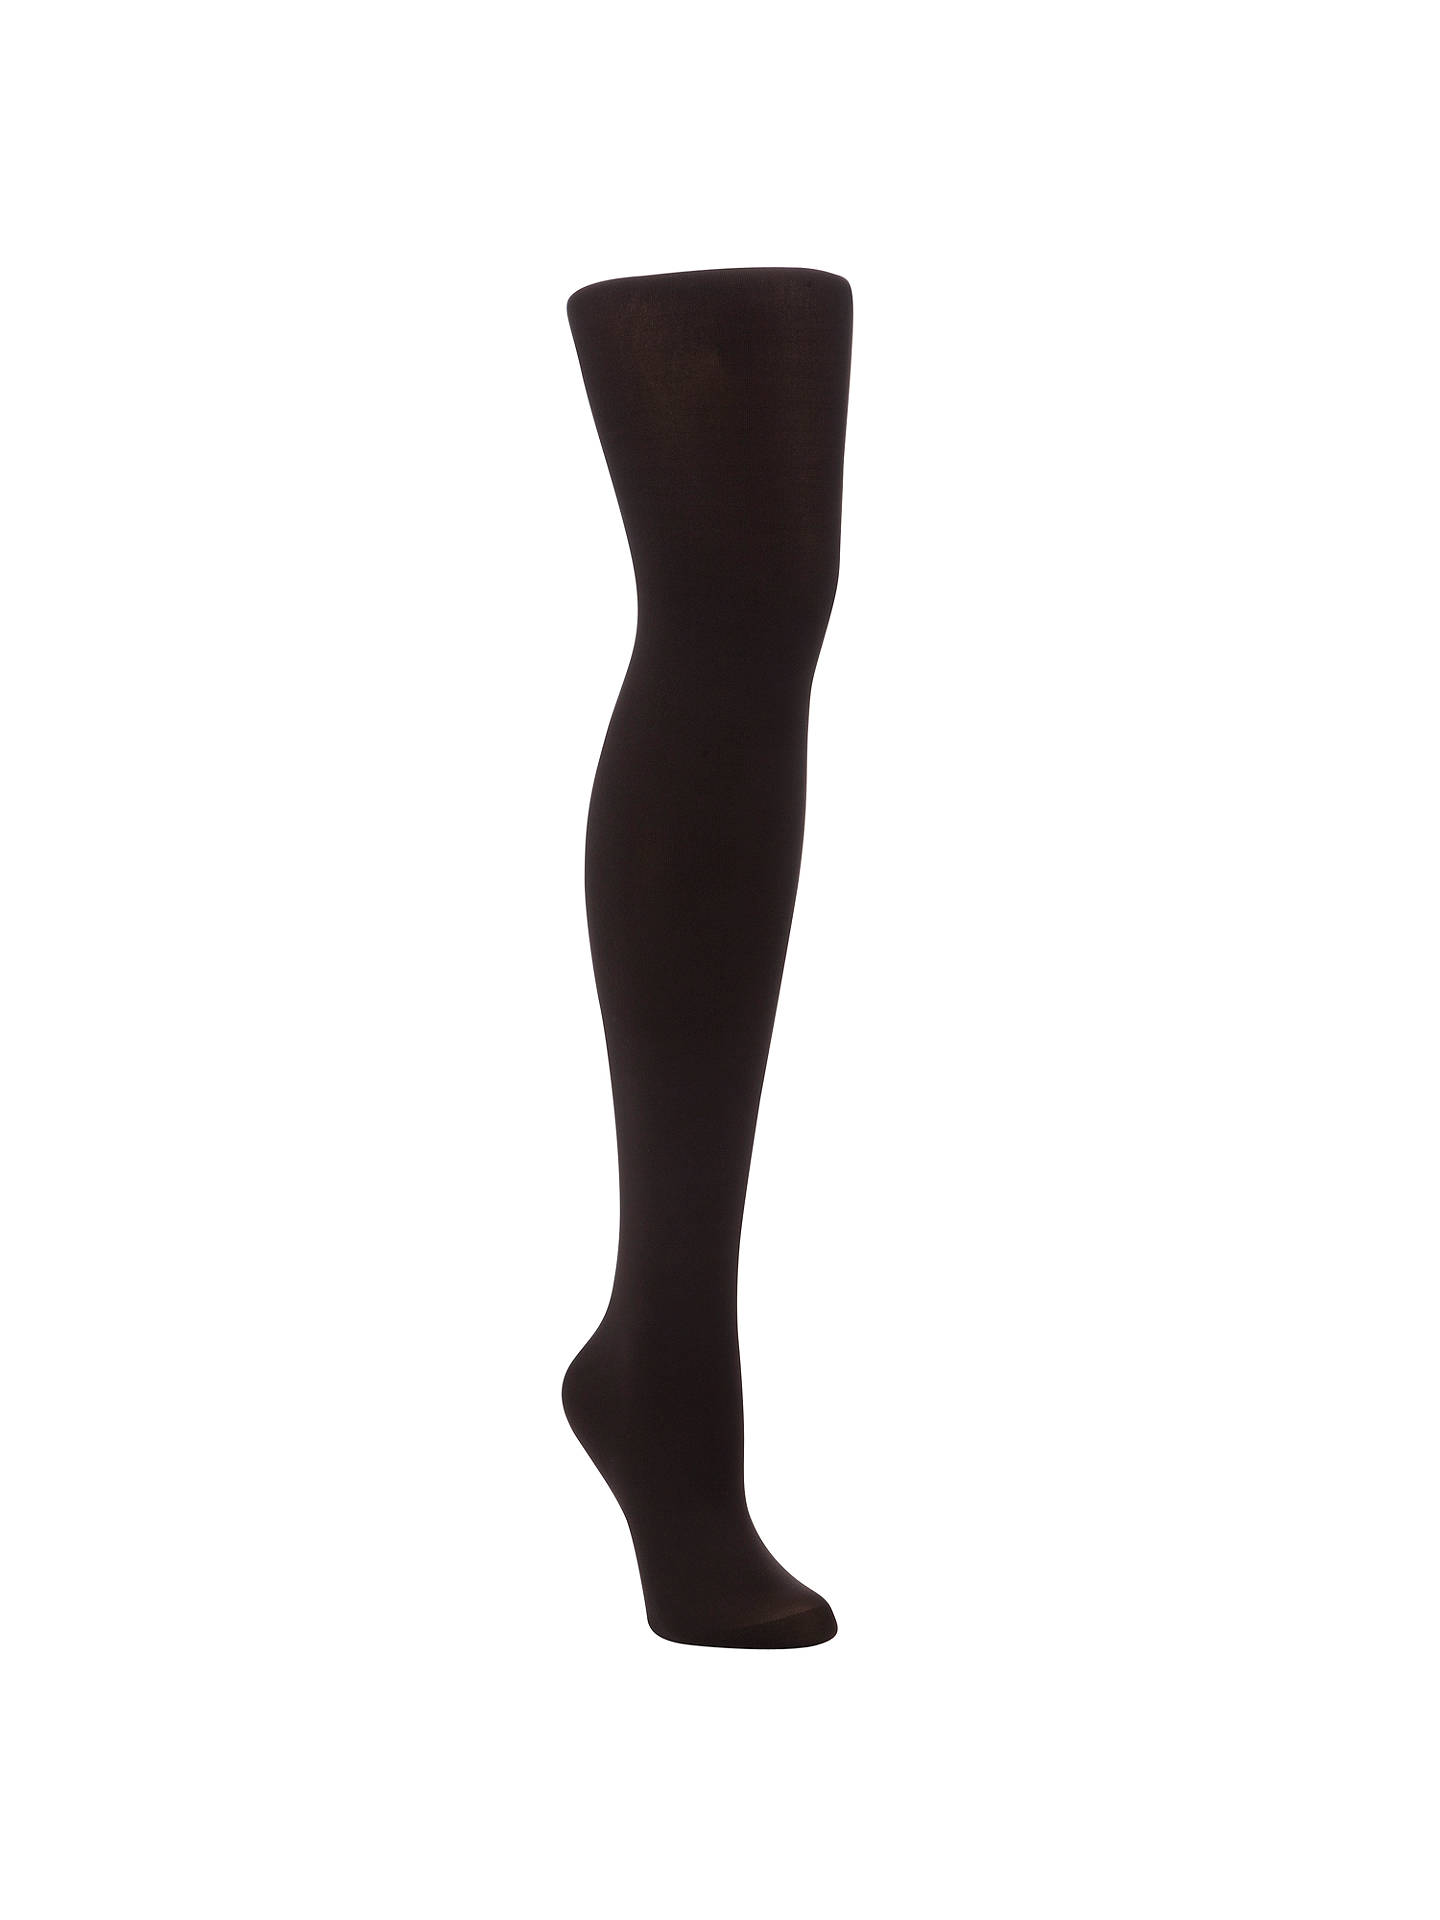 Buy John Lewis & Partners 60 Denier Velvet Touch Opaque Tights, Brown, S Online at johnlewis.com